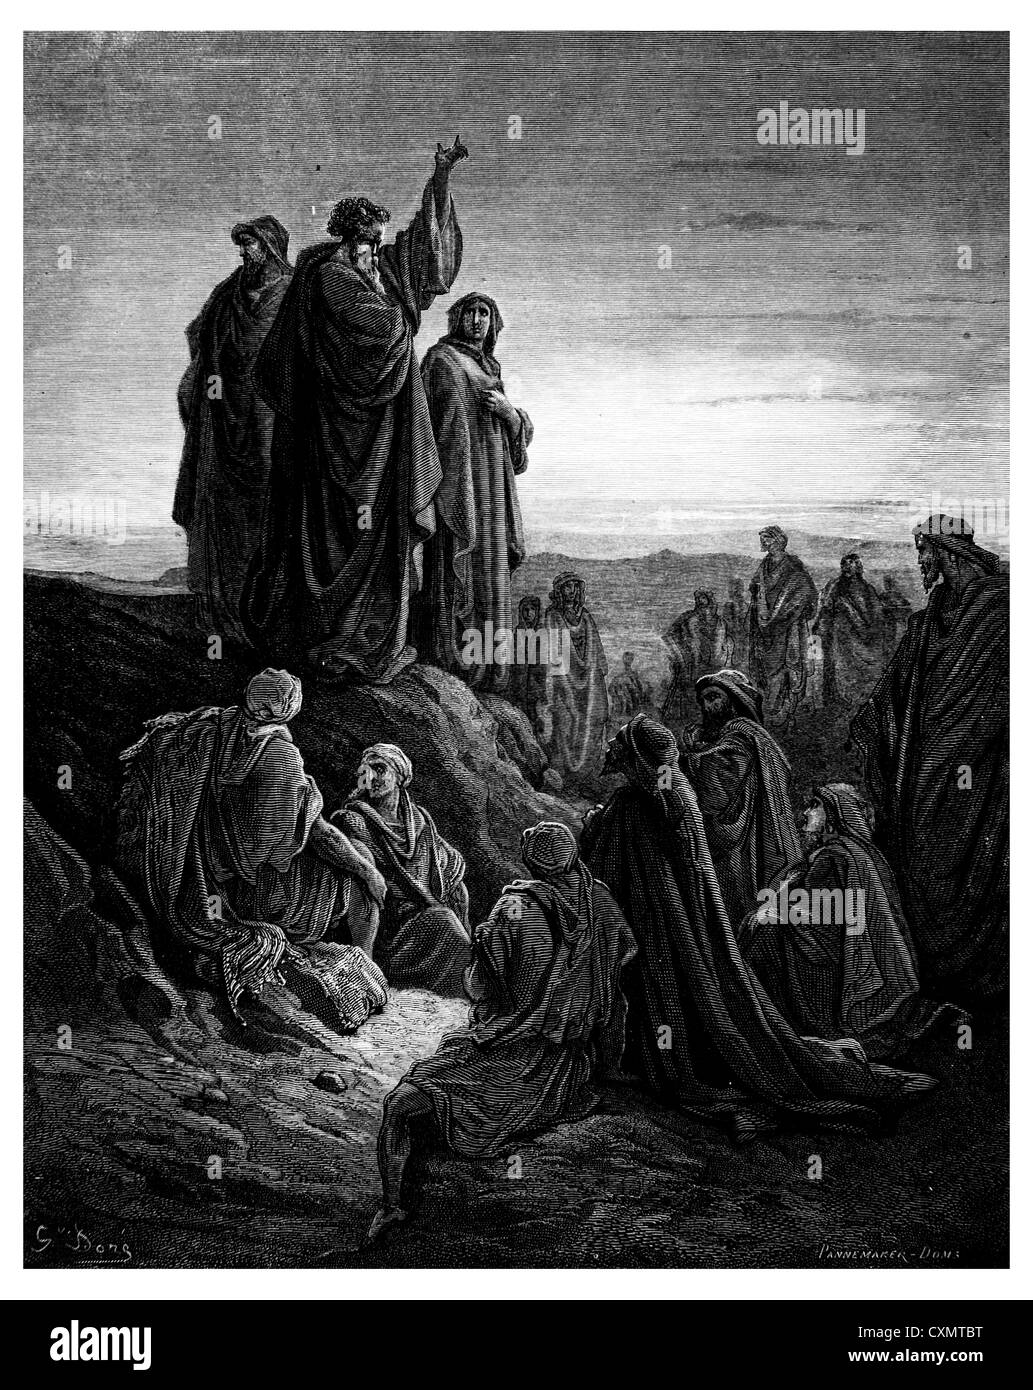 The apostles preached the gospel - Stock Image